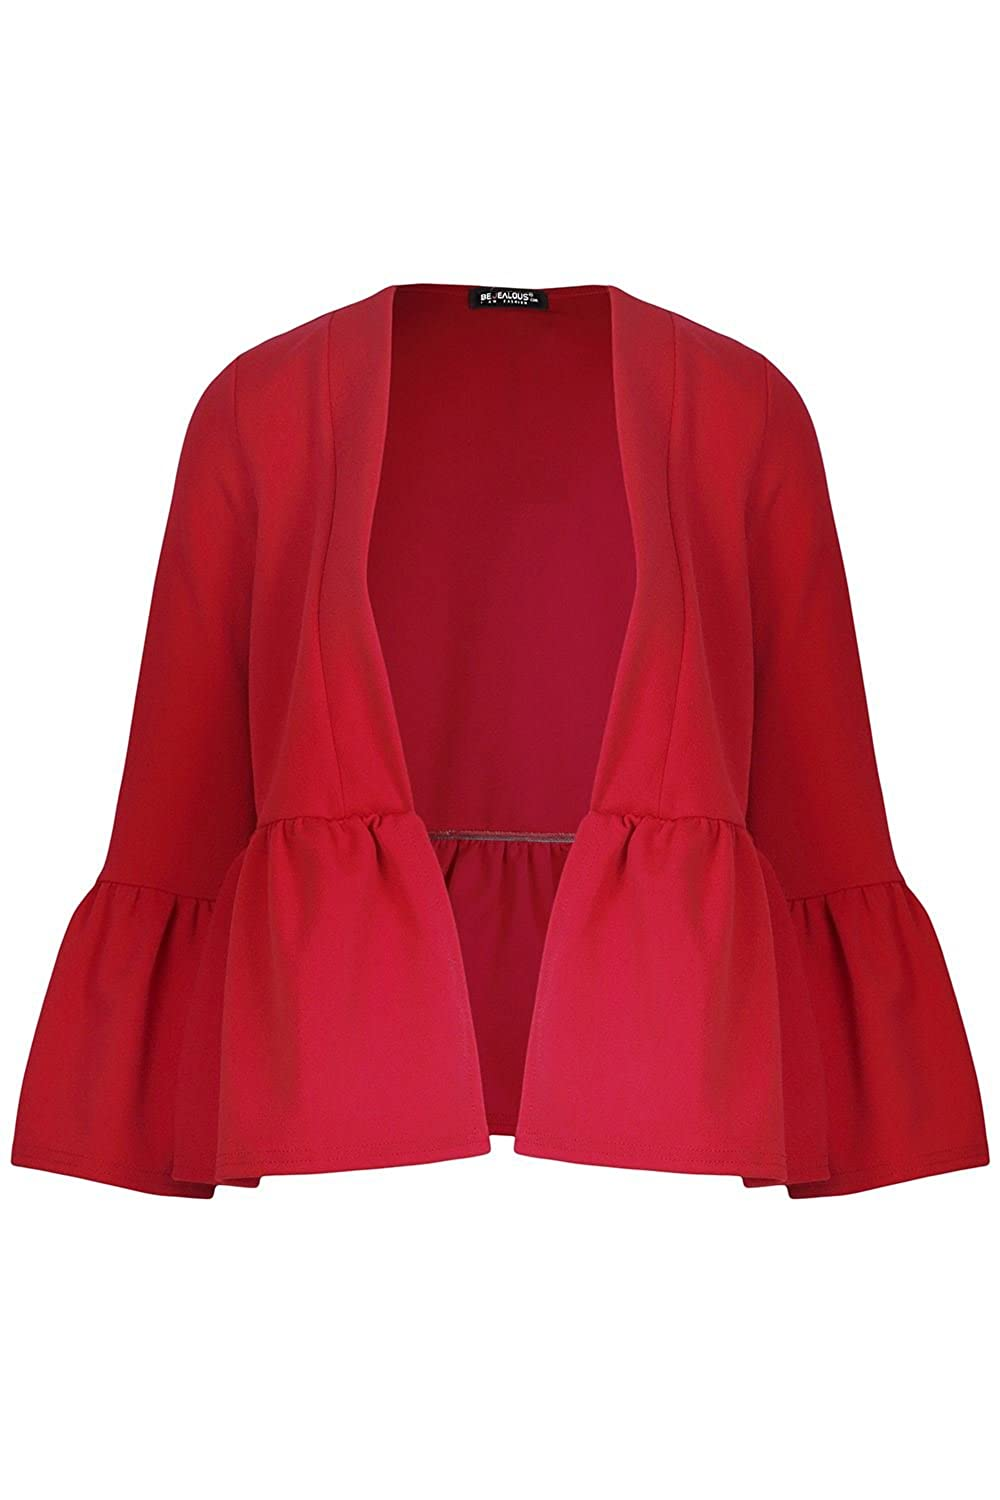 Fashion Star Oops Outlet Womens Peplum Ruffle Frill Long Sleeve Open Front Coat Ladies Crop Blazer Jacket BE JEALOUS